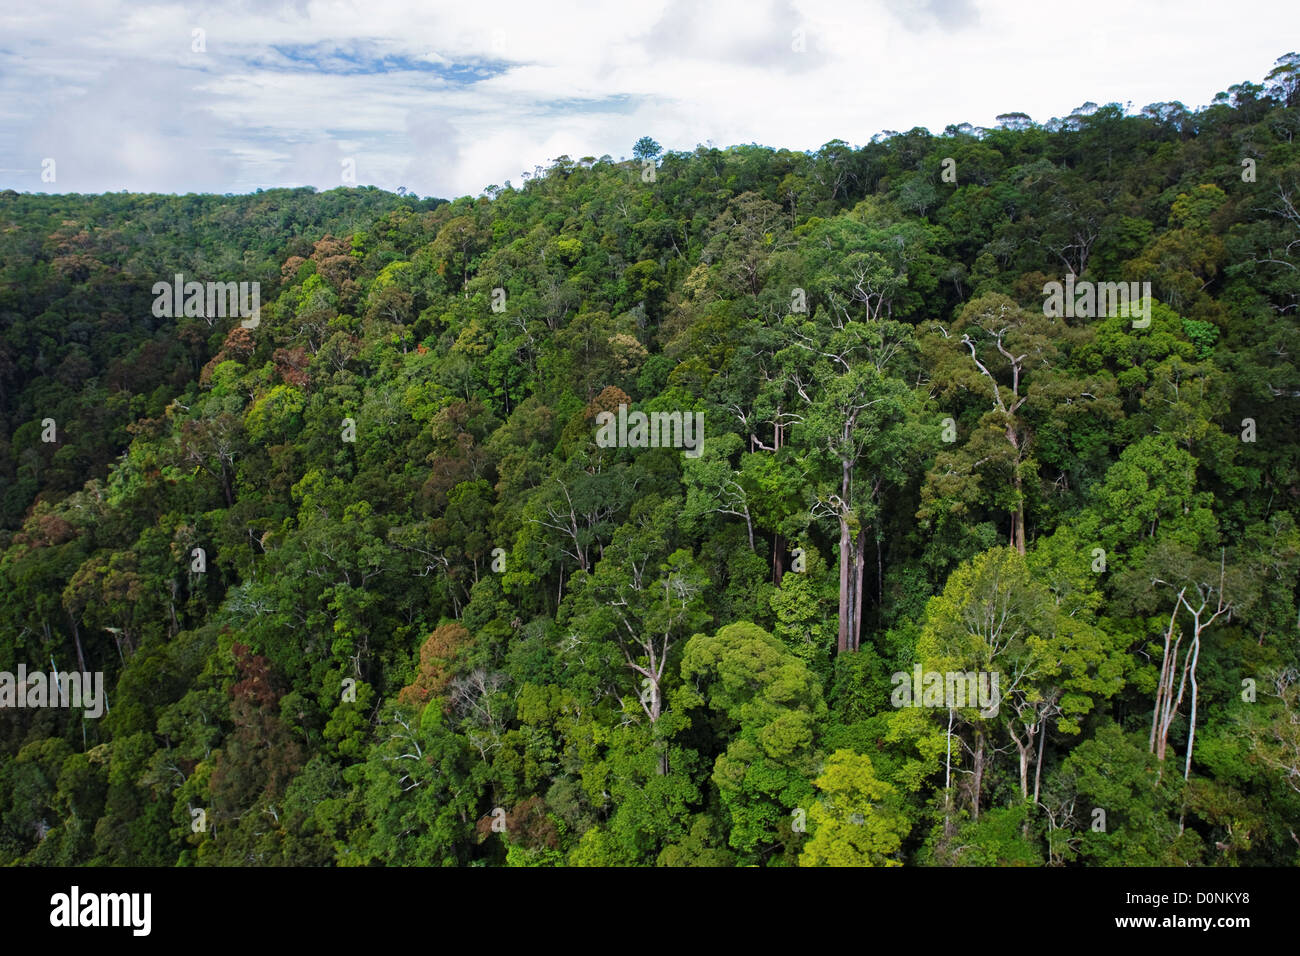 An area of dense forest photographed from a helicopter around Maliau Basin, Sabah, Borneo, East Malaysia. - Stock Image